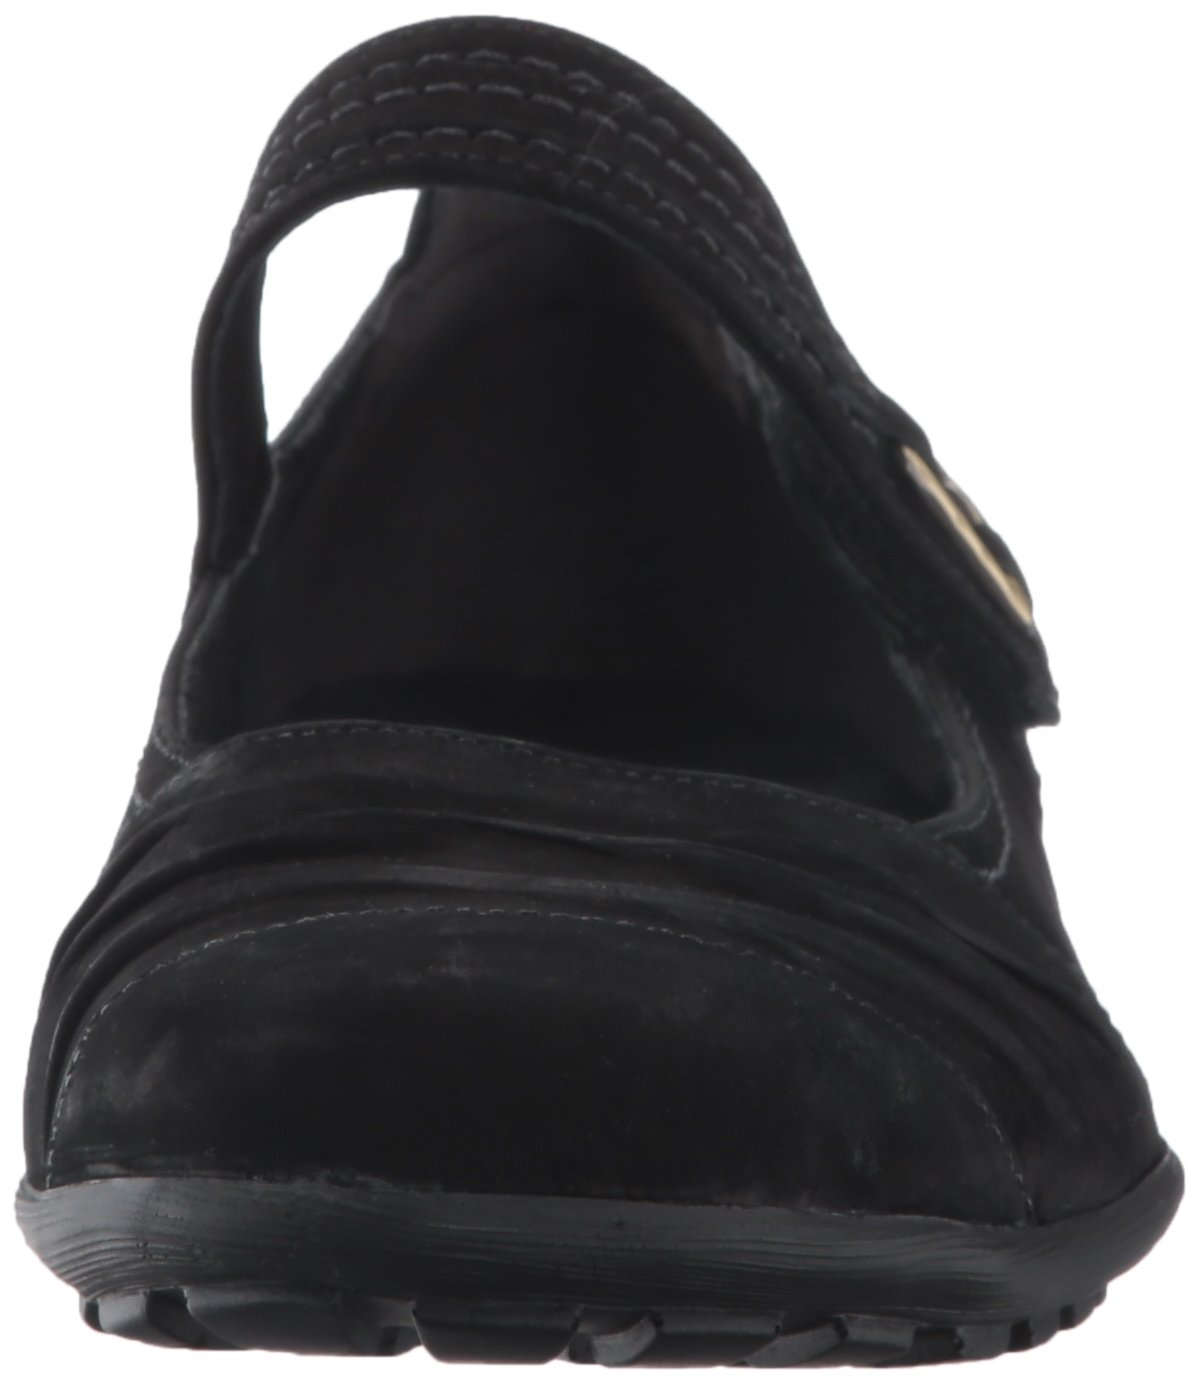 Walking Cradles Women's Hayden Loafer B01MZD7CNS 6.5 W US|Black Roughout Leather